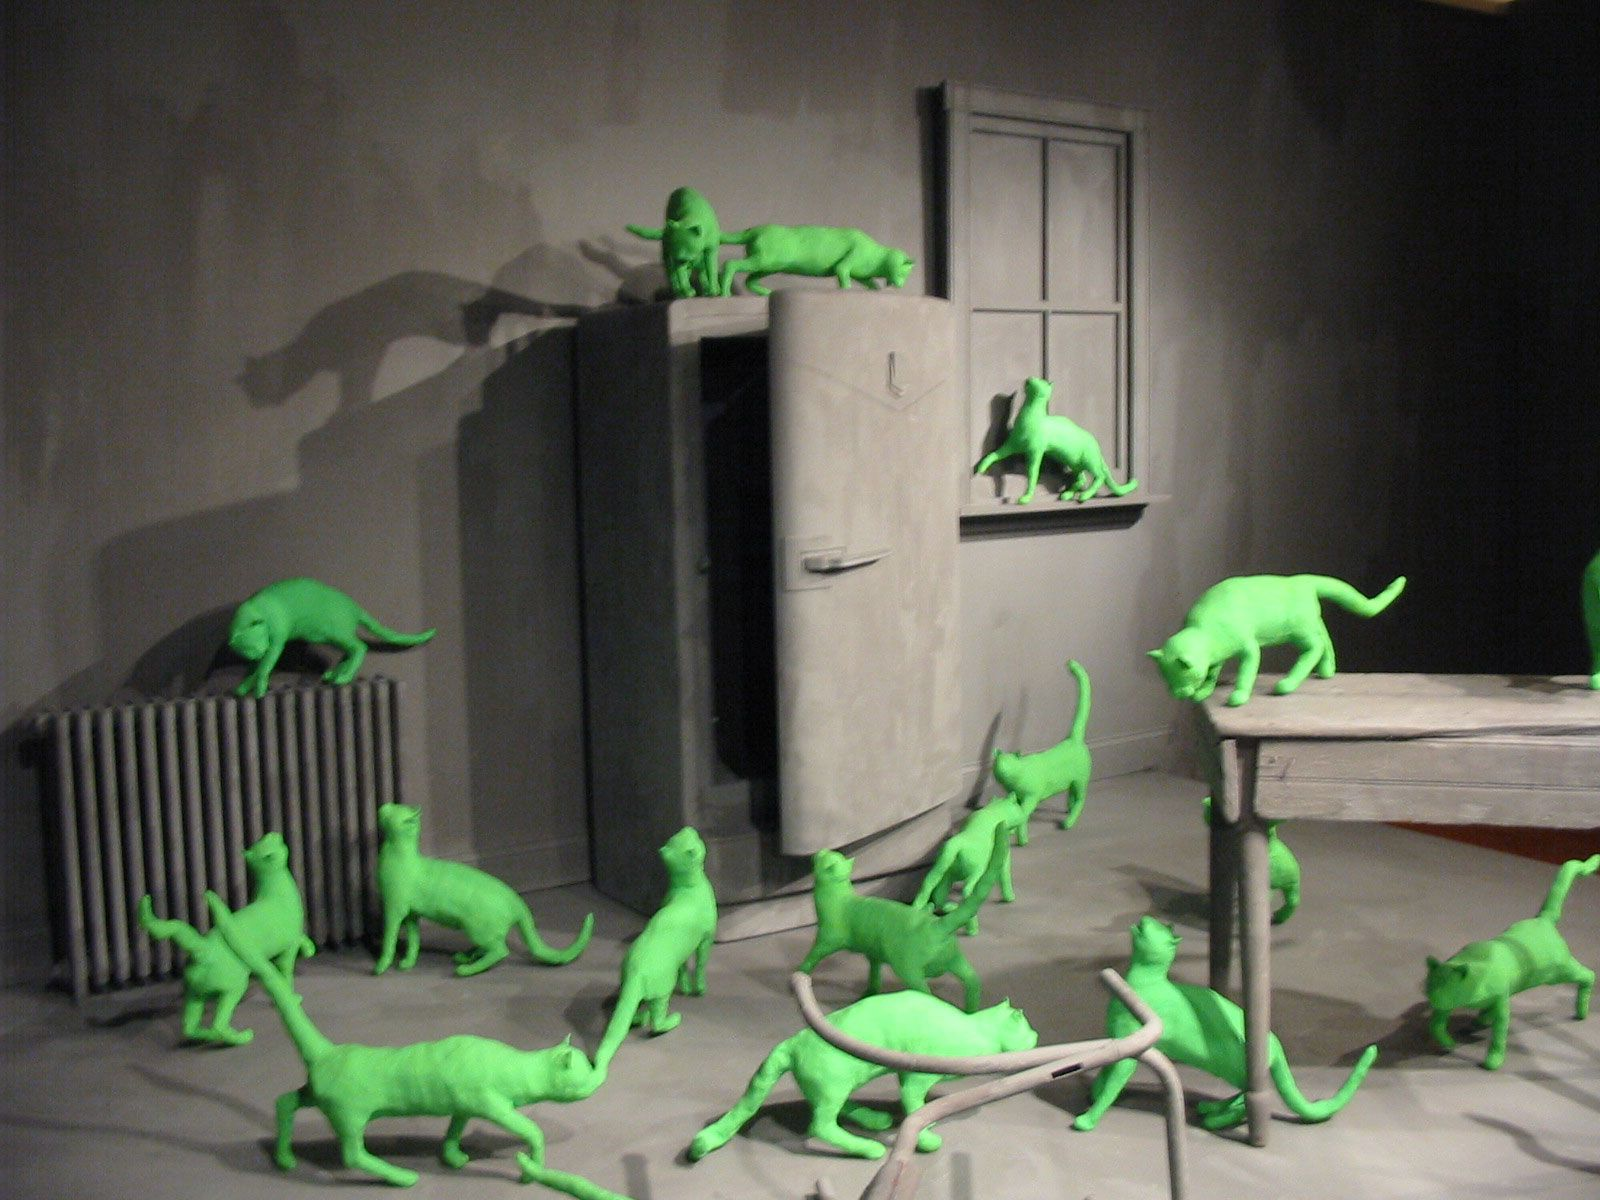 The Amazing Art Of Sandy Skoglund Sandy Skoglund Artist And Art - Artist creates amazing fantasy dreamscapes into her small studio without using photoshop